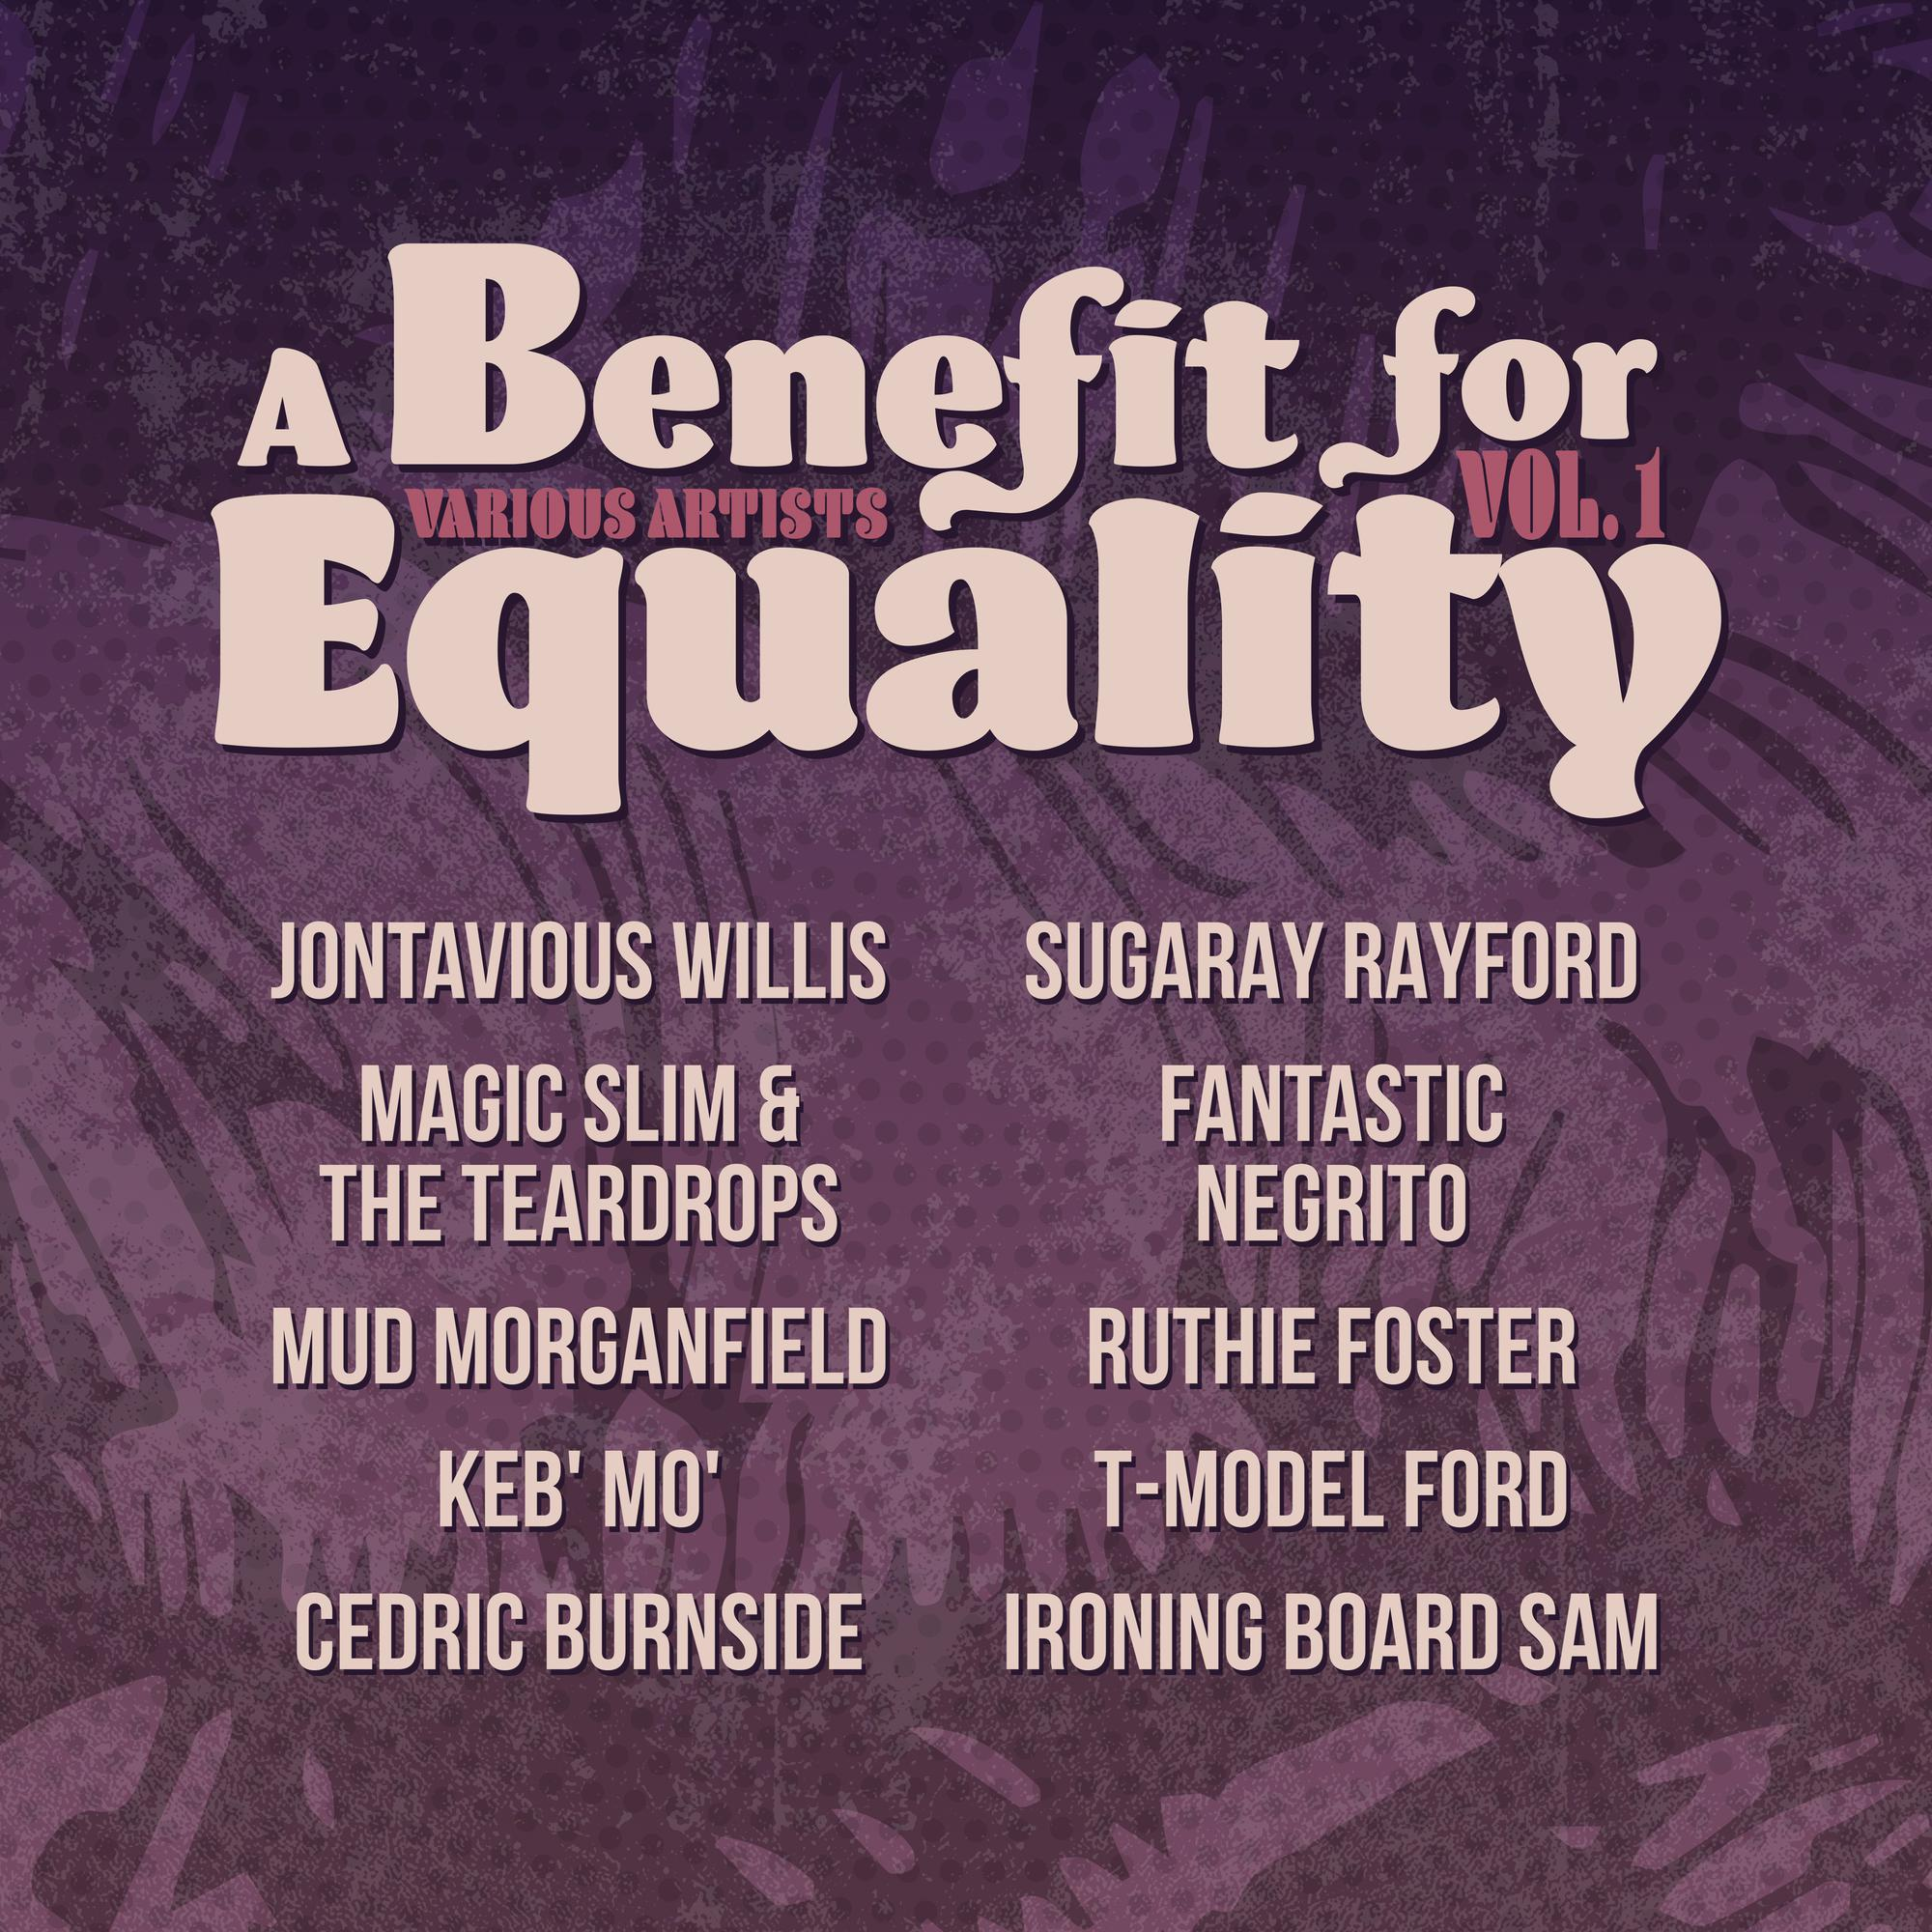 Various Artists - A Benefit For Equality Vol. 1 [Indie Exclusive Limited Edition LP]